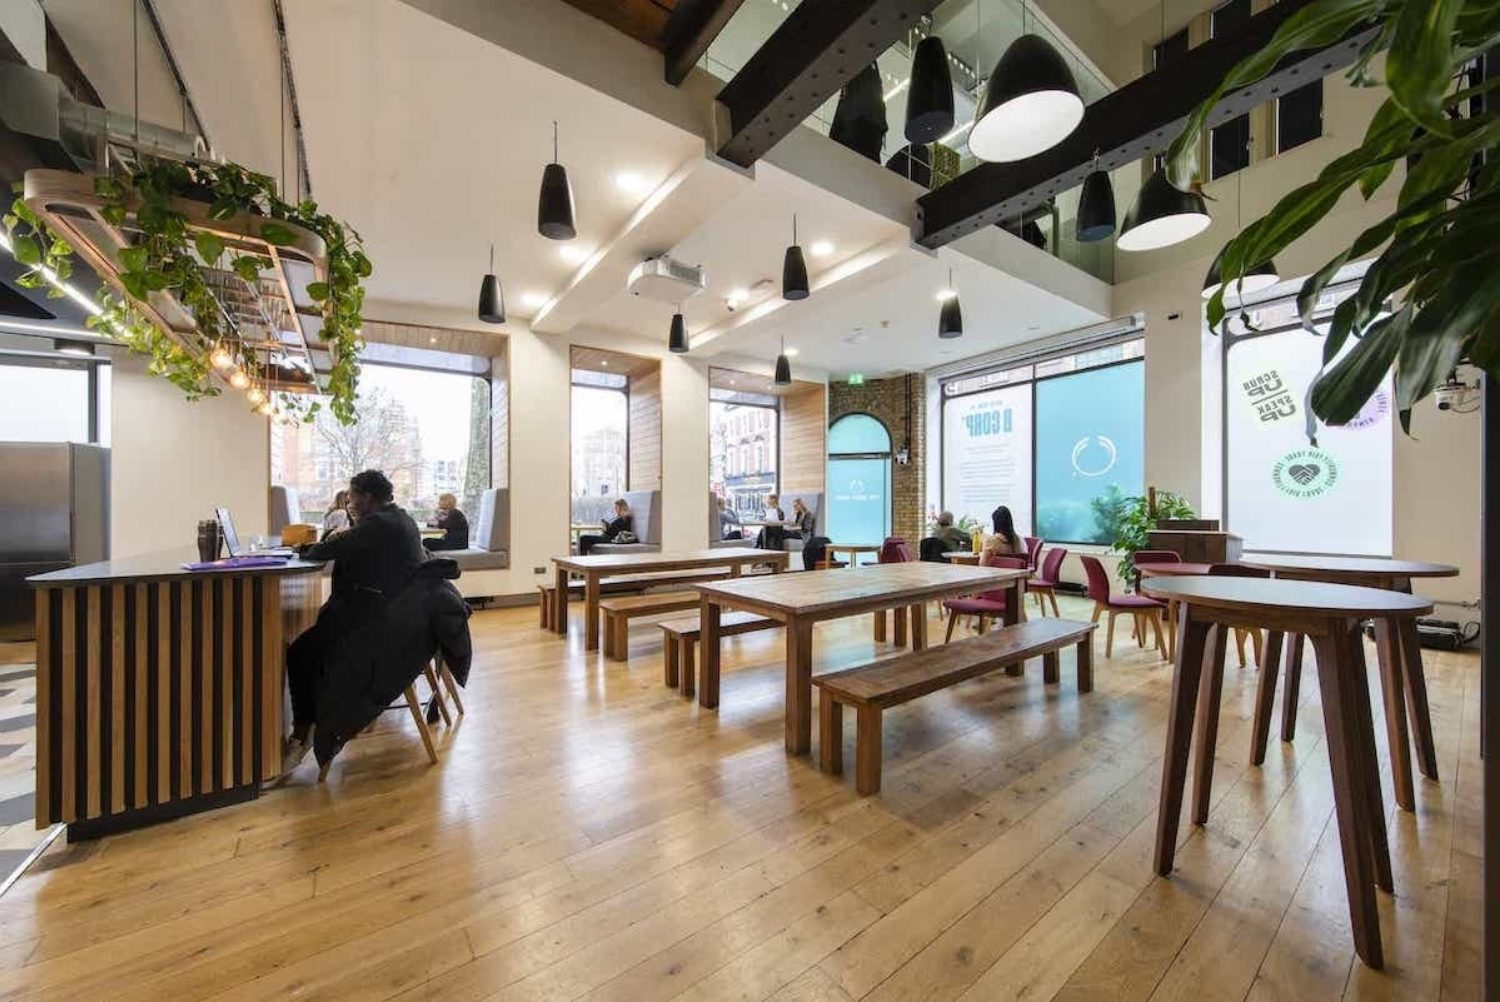 Office design to improve organisational culture